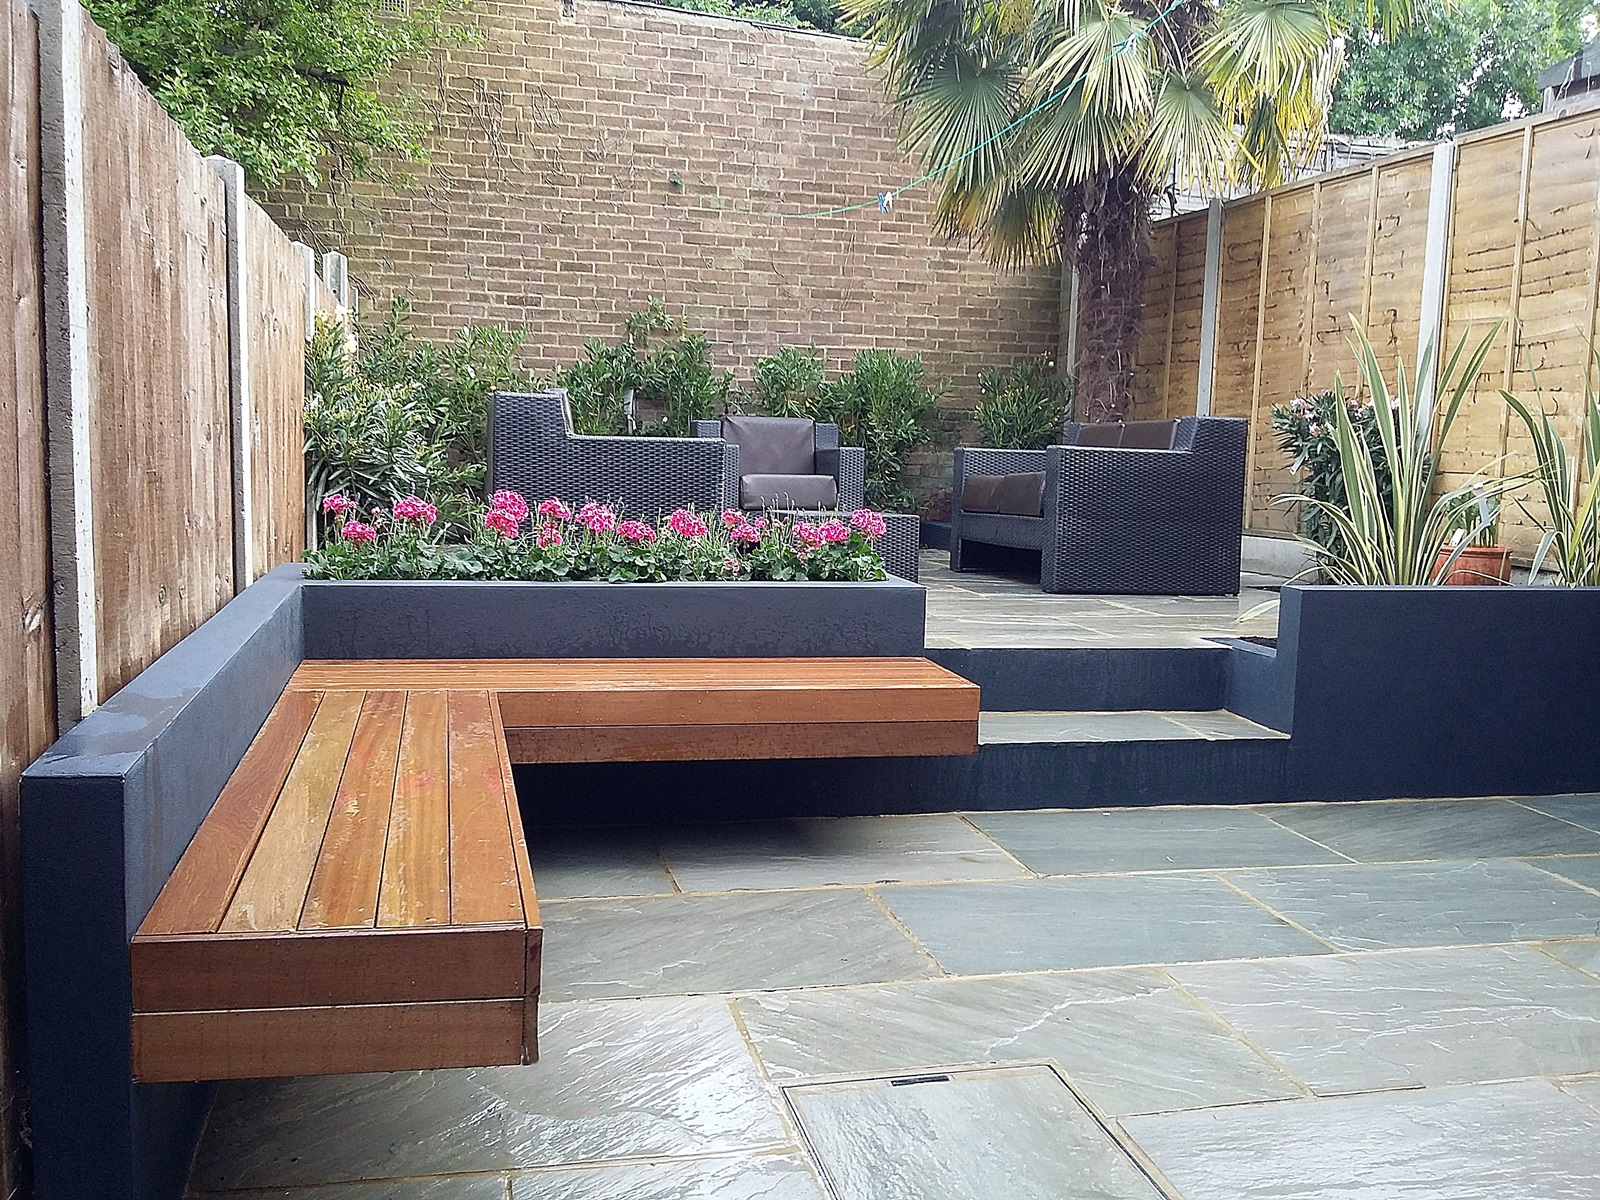 Modern garden design london natural sandstone paving patio for Small garden design